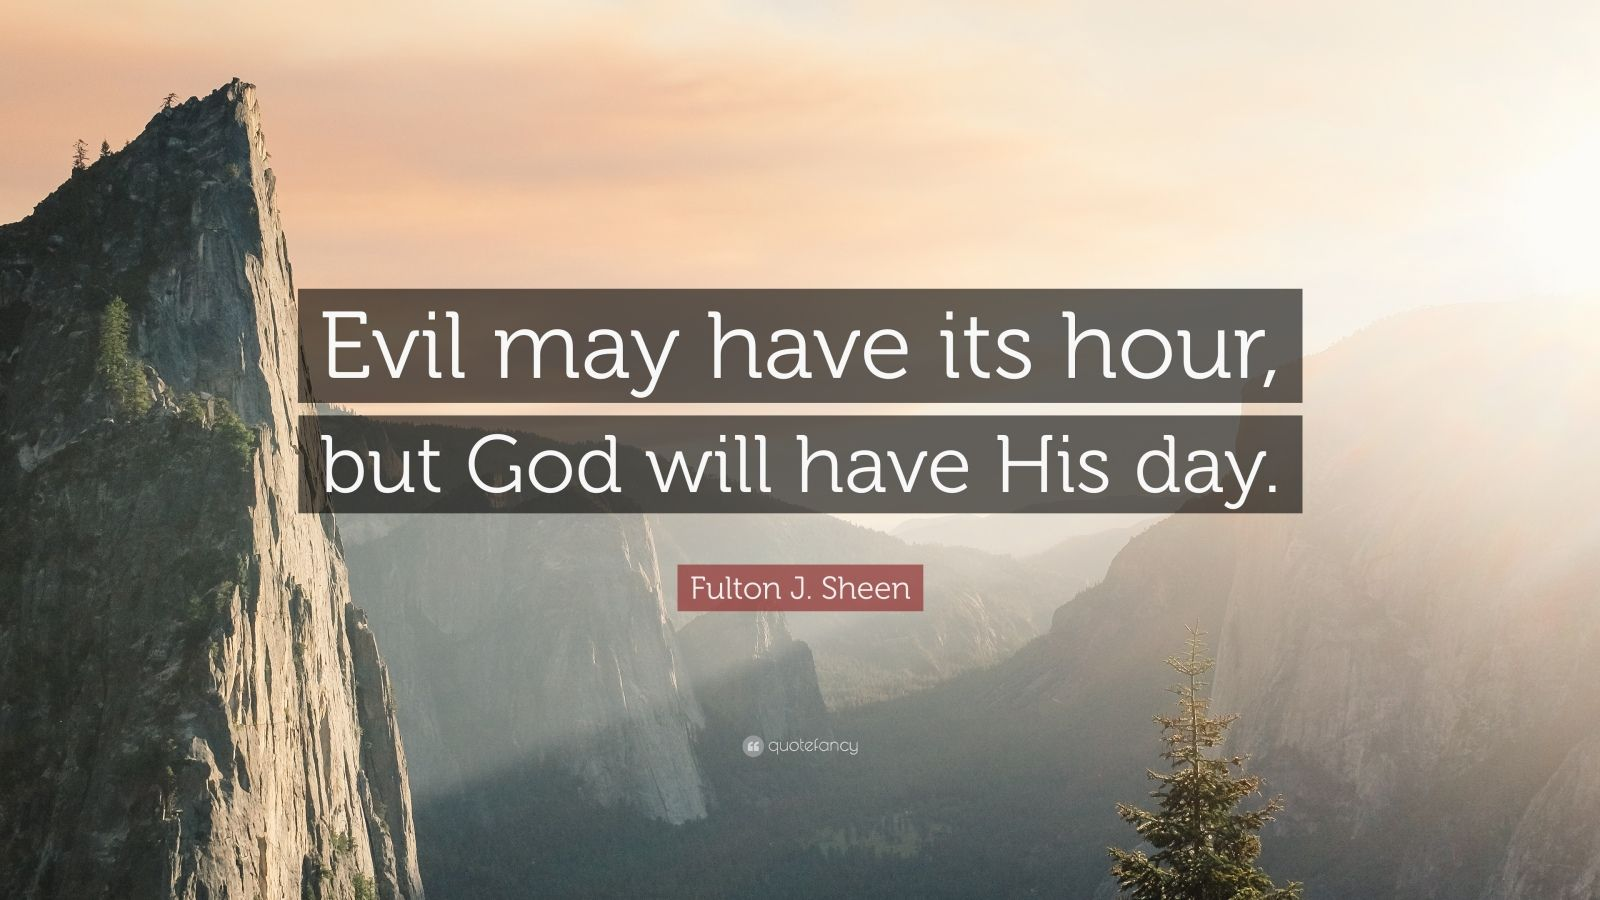 """Fulton J. Sheen Quote: """"Evil may have its hour, but God will have His day."""""""